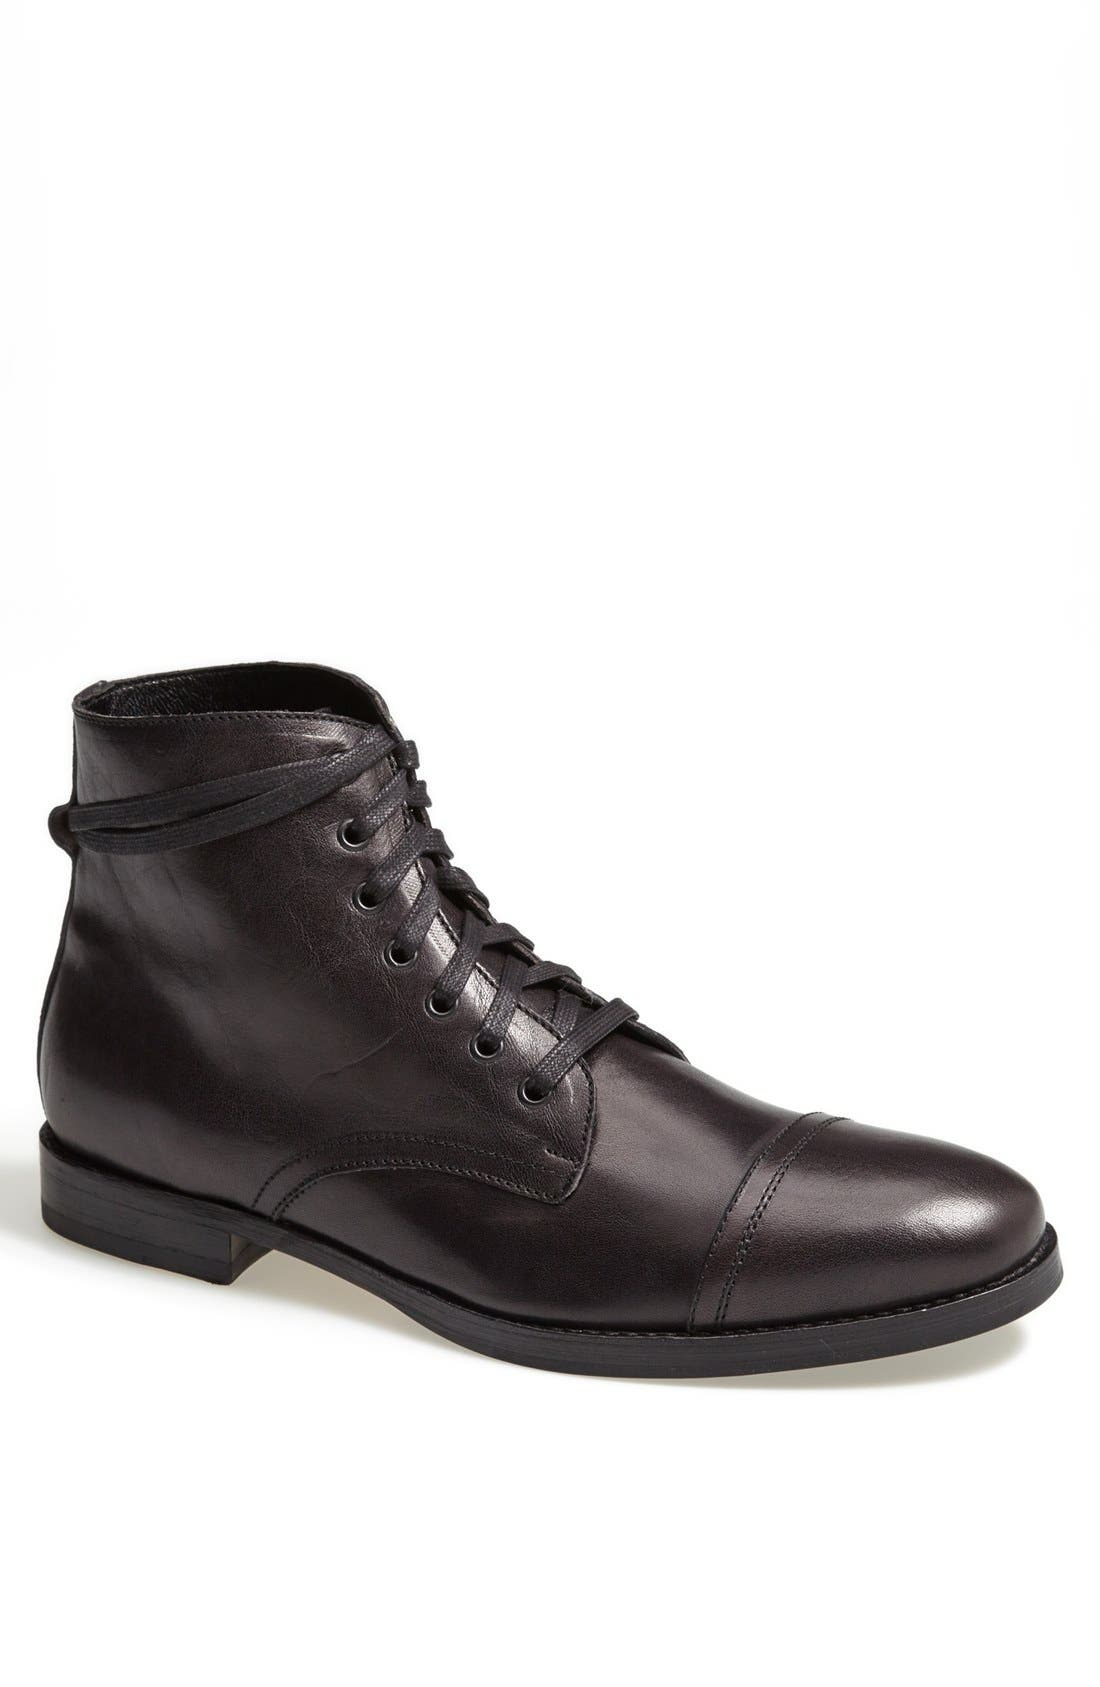 Alternate Image 1 Selected - Maison Forte 'Malleus II' Cap Toe Boot